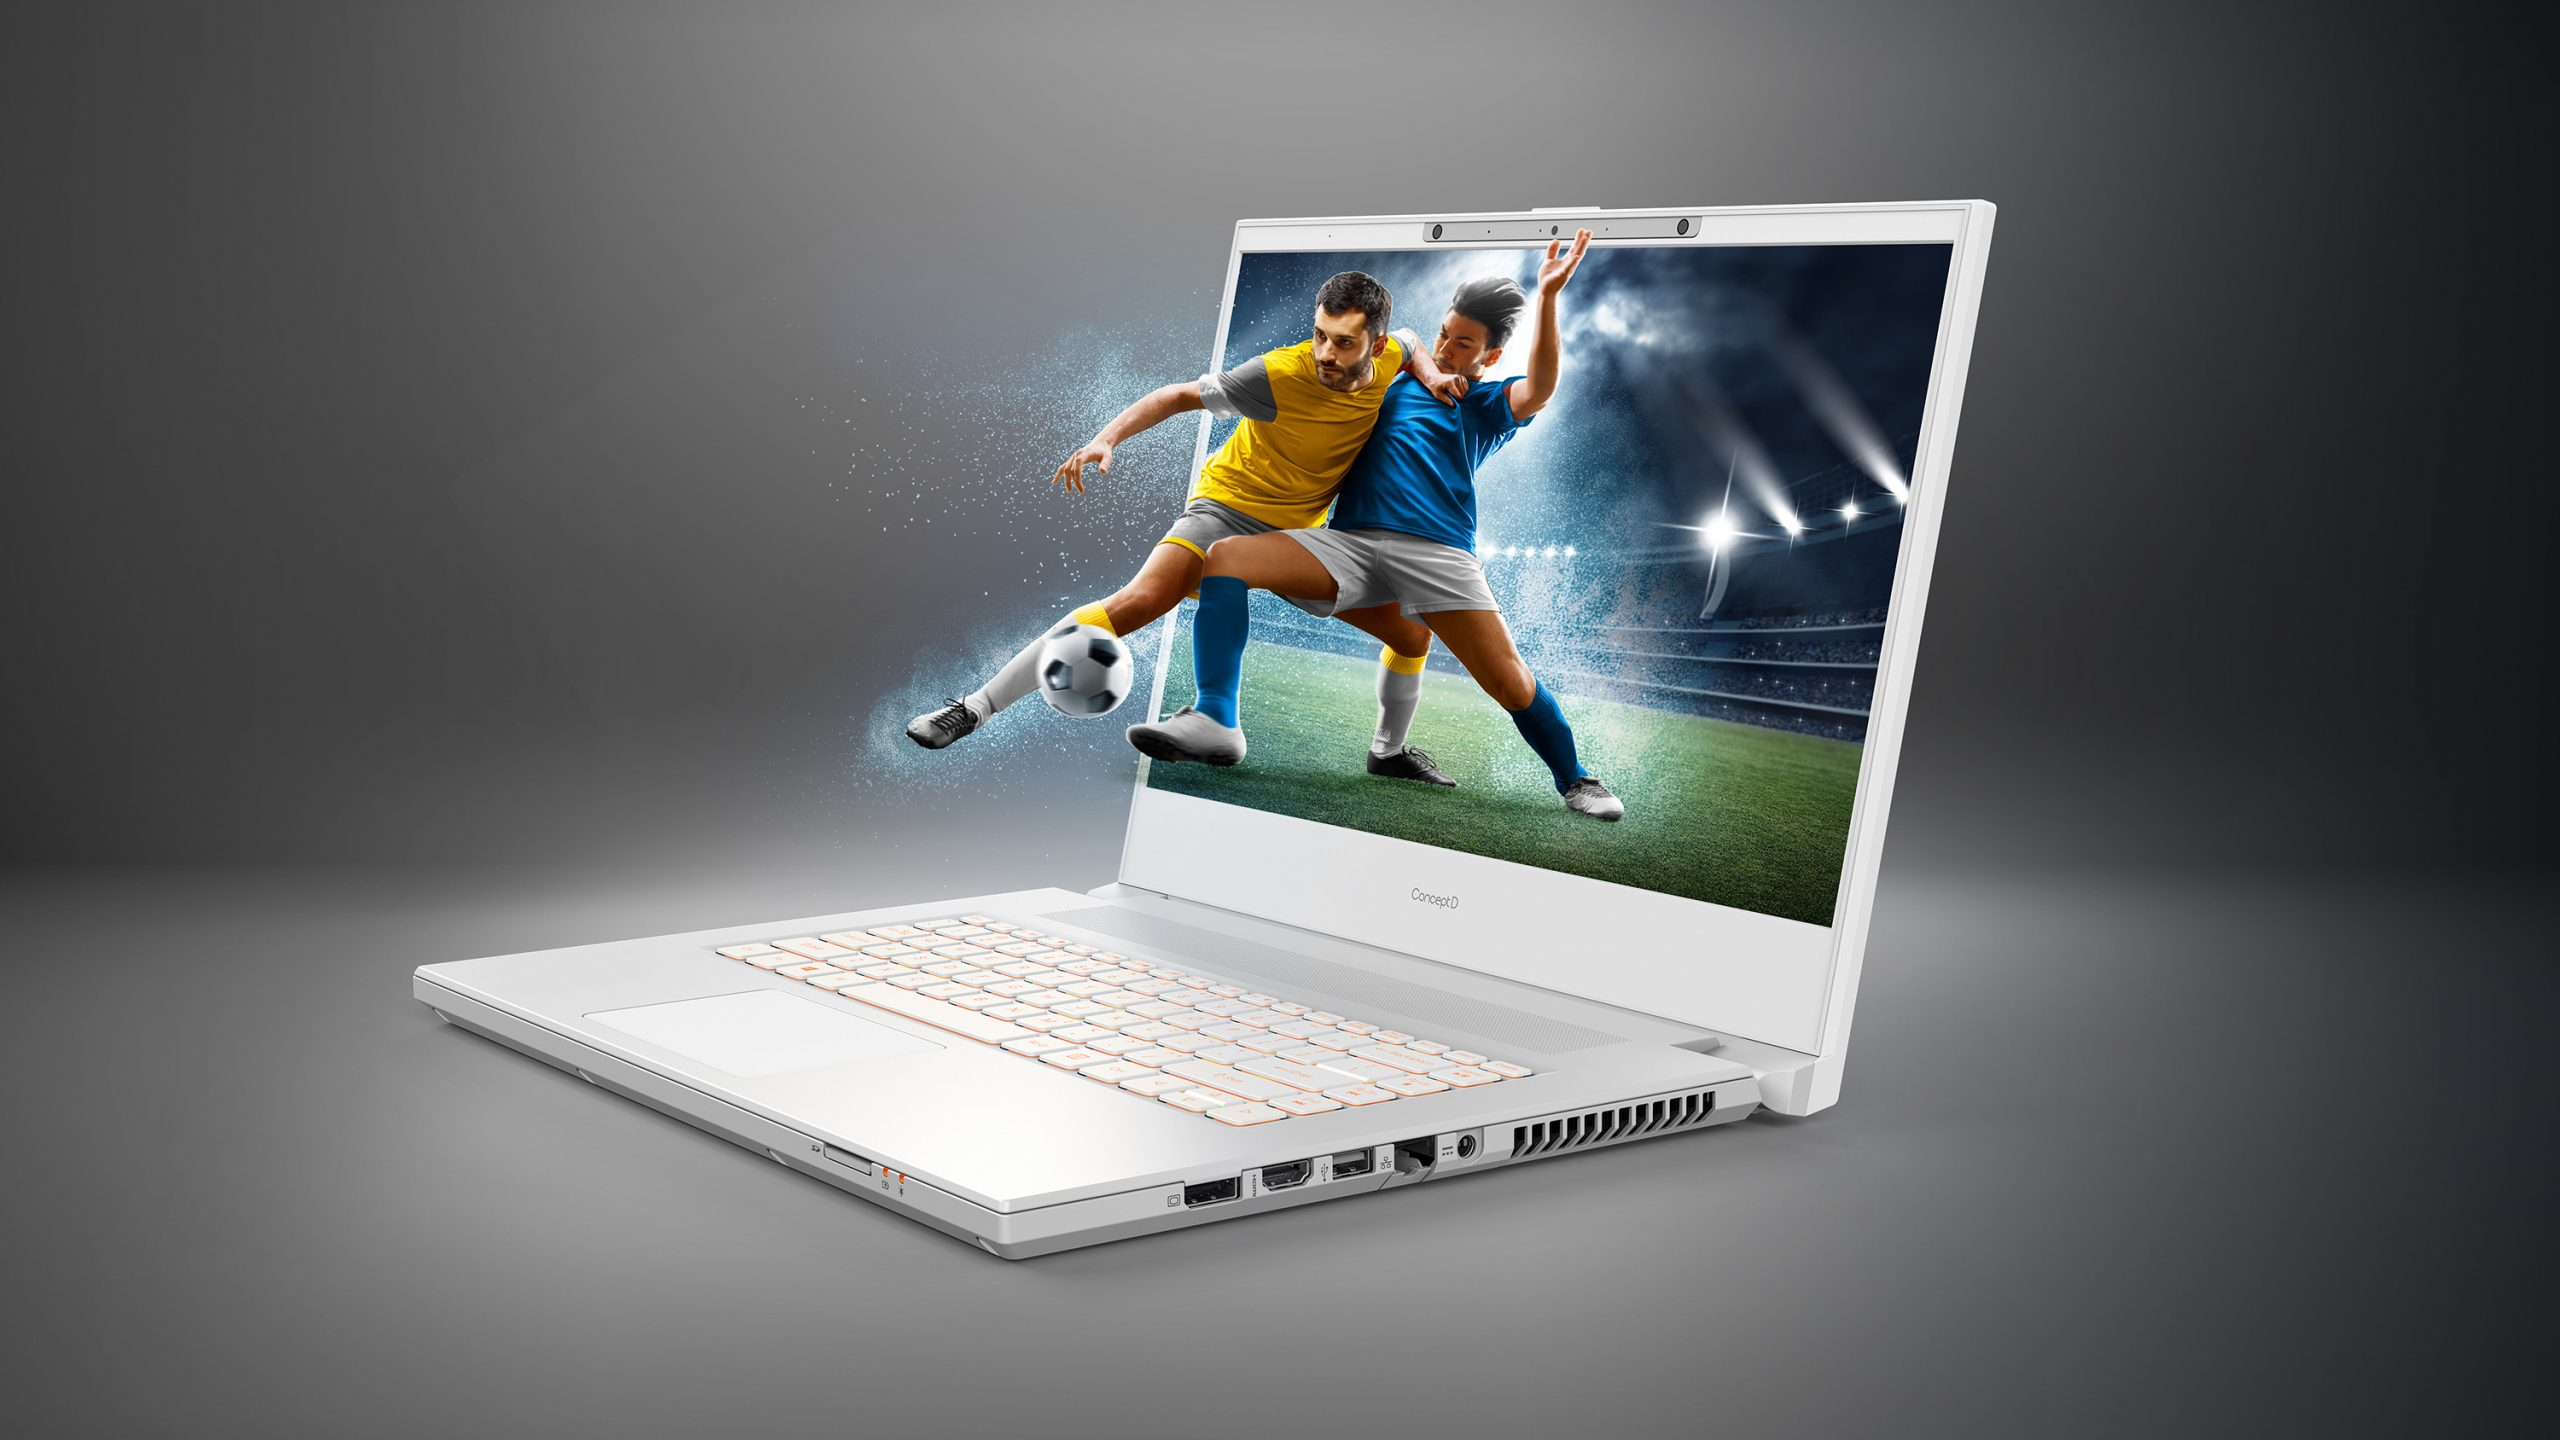 An Acer laptop with a 3D effect making the soccer players seem as if they are coming out of the screen